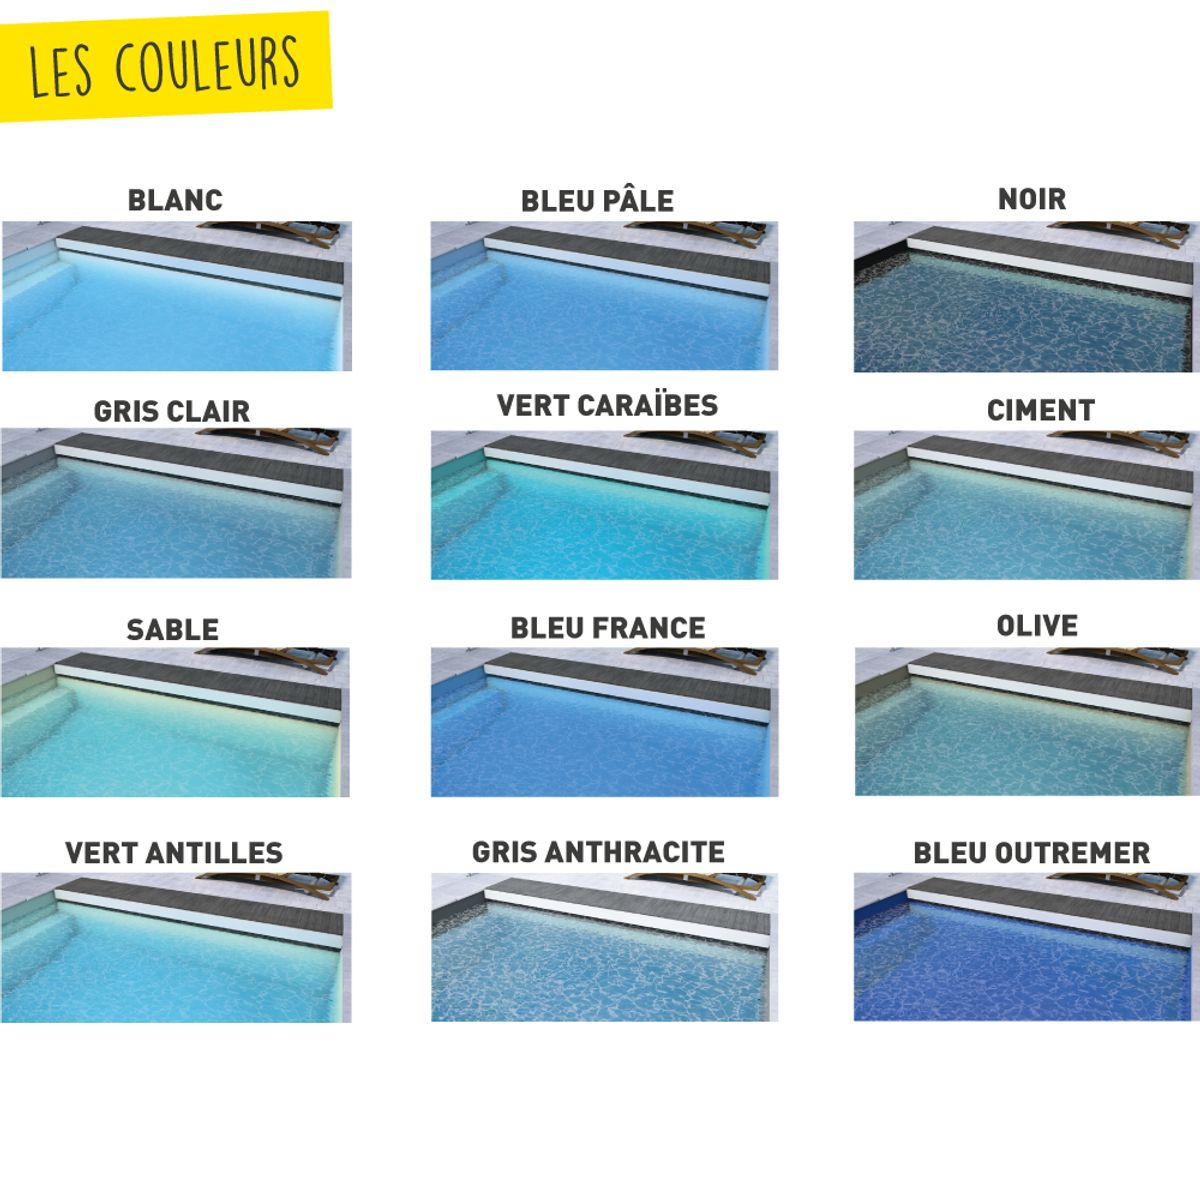 Https://.cash-Piscines/velo-Elliptique-Piscine-Elly-P ... avec Liner Piscine Prix